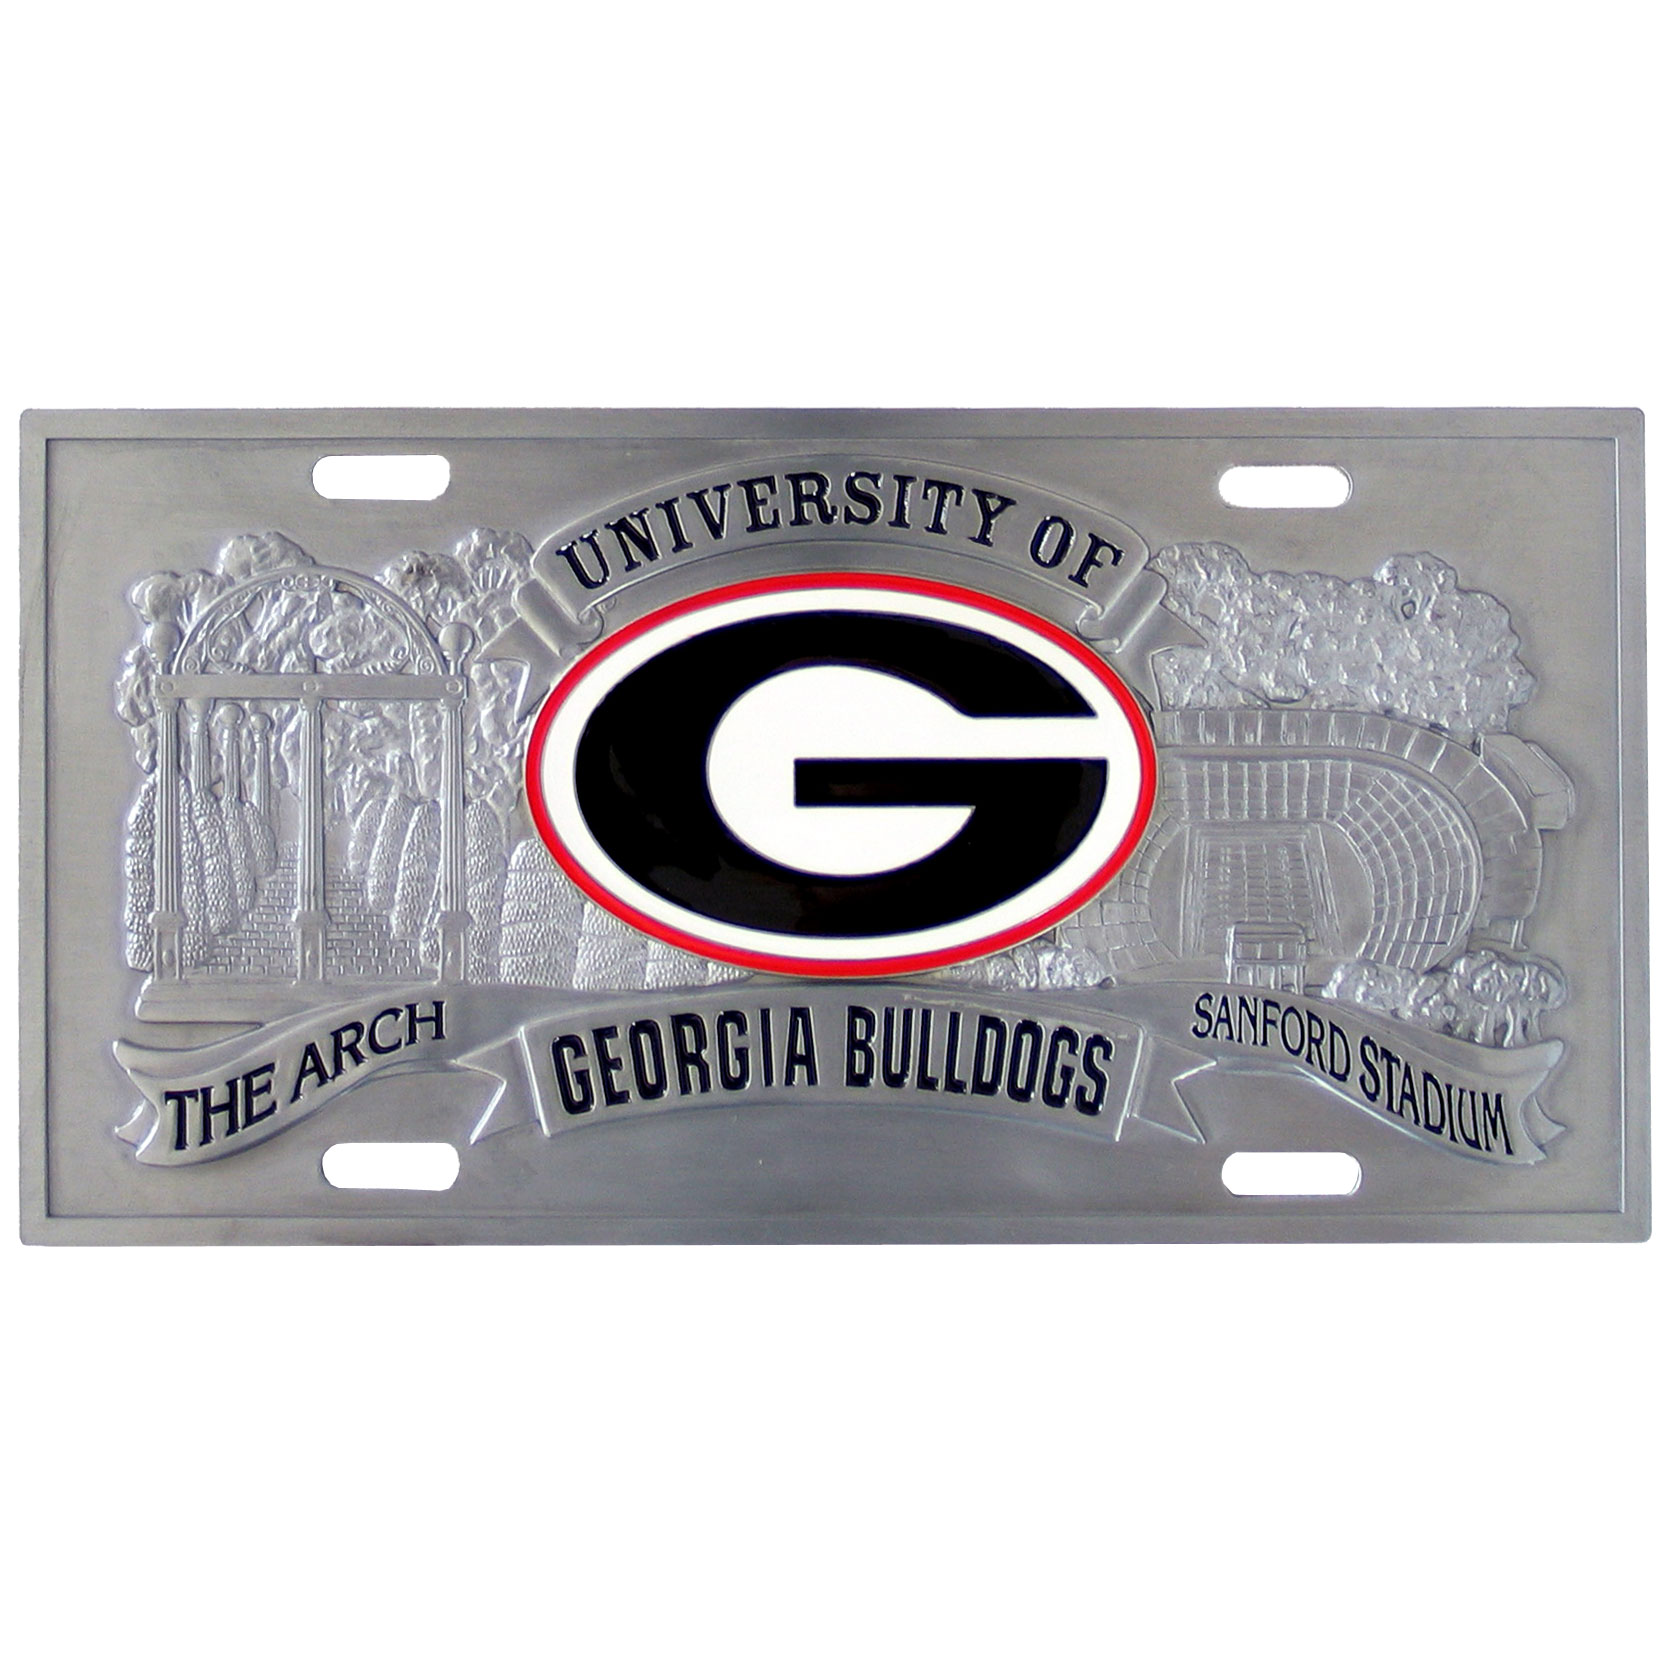 "Georgia Bulldogs - 3D License Plate - Georgia Bulldogs three dimensional license plate. Made for your automobile but also great to display at work or home.  11 3/4"" X 5 13/16"" Thank you for shopping with CrazedOutSports.com"